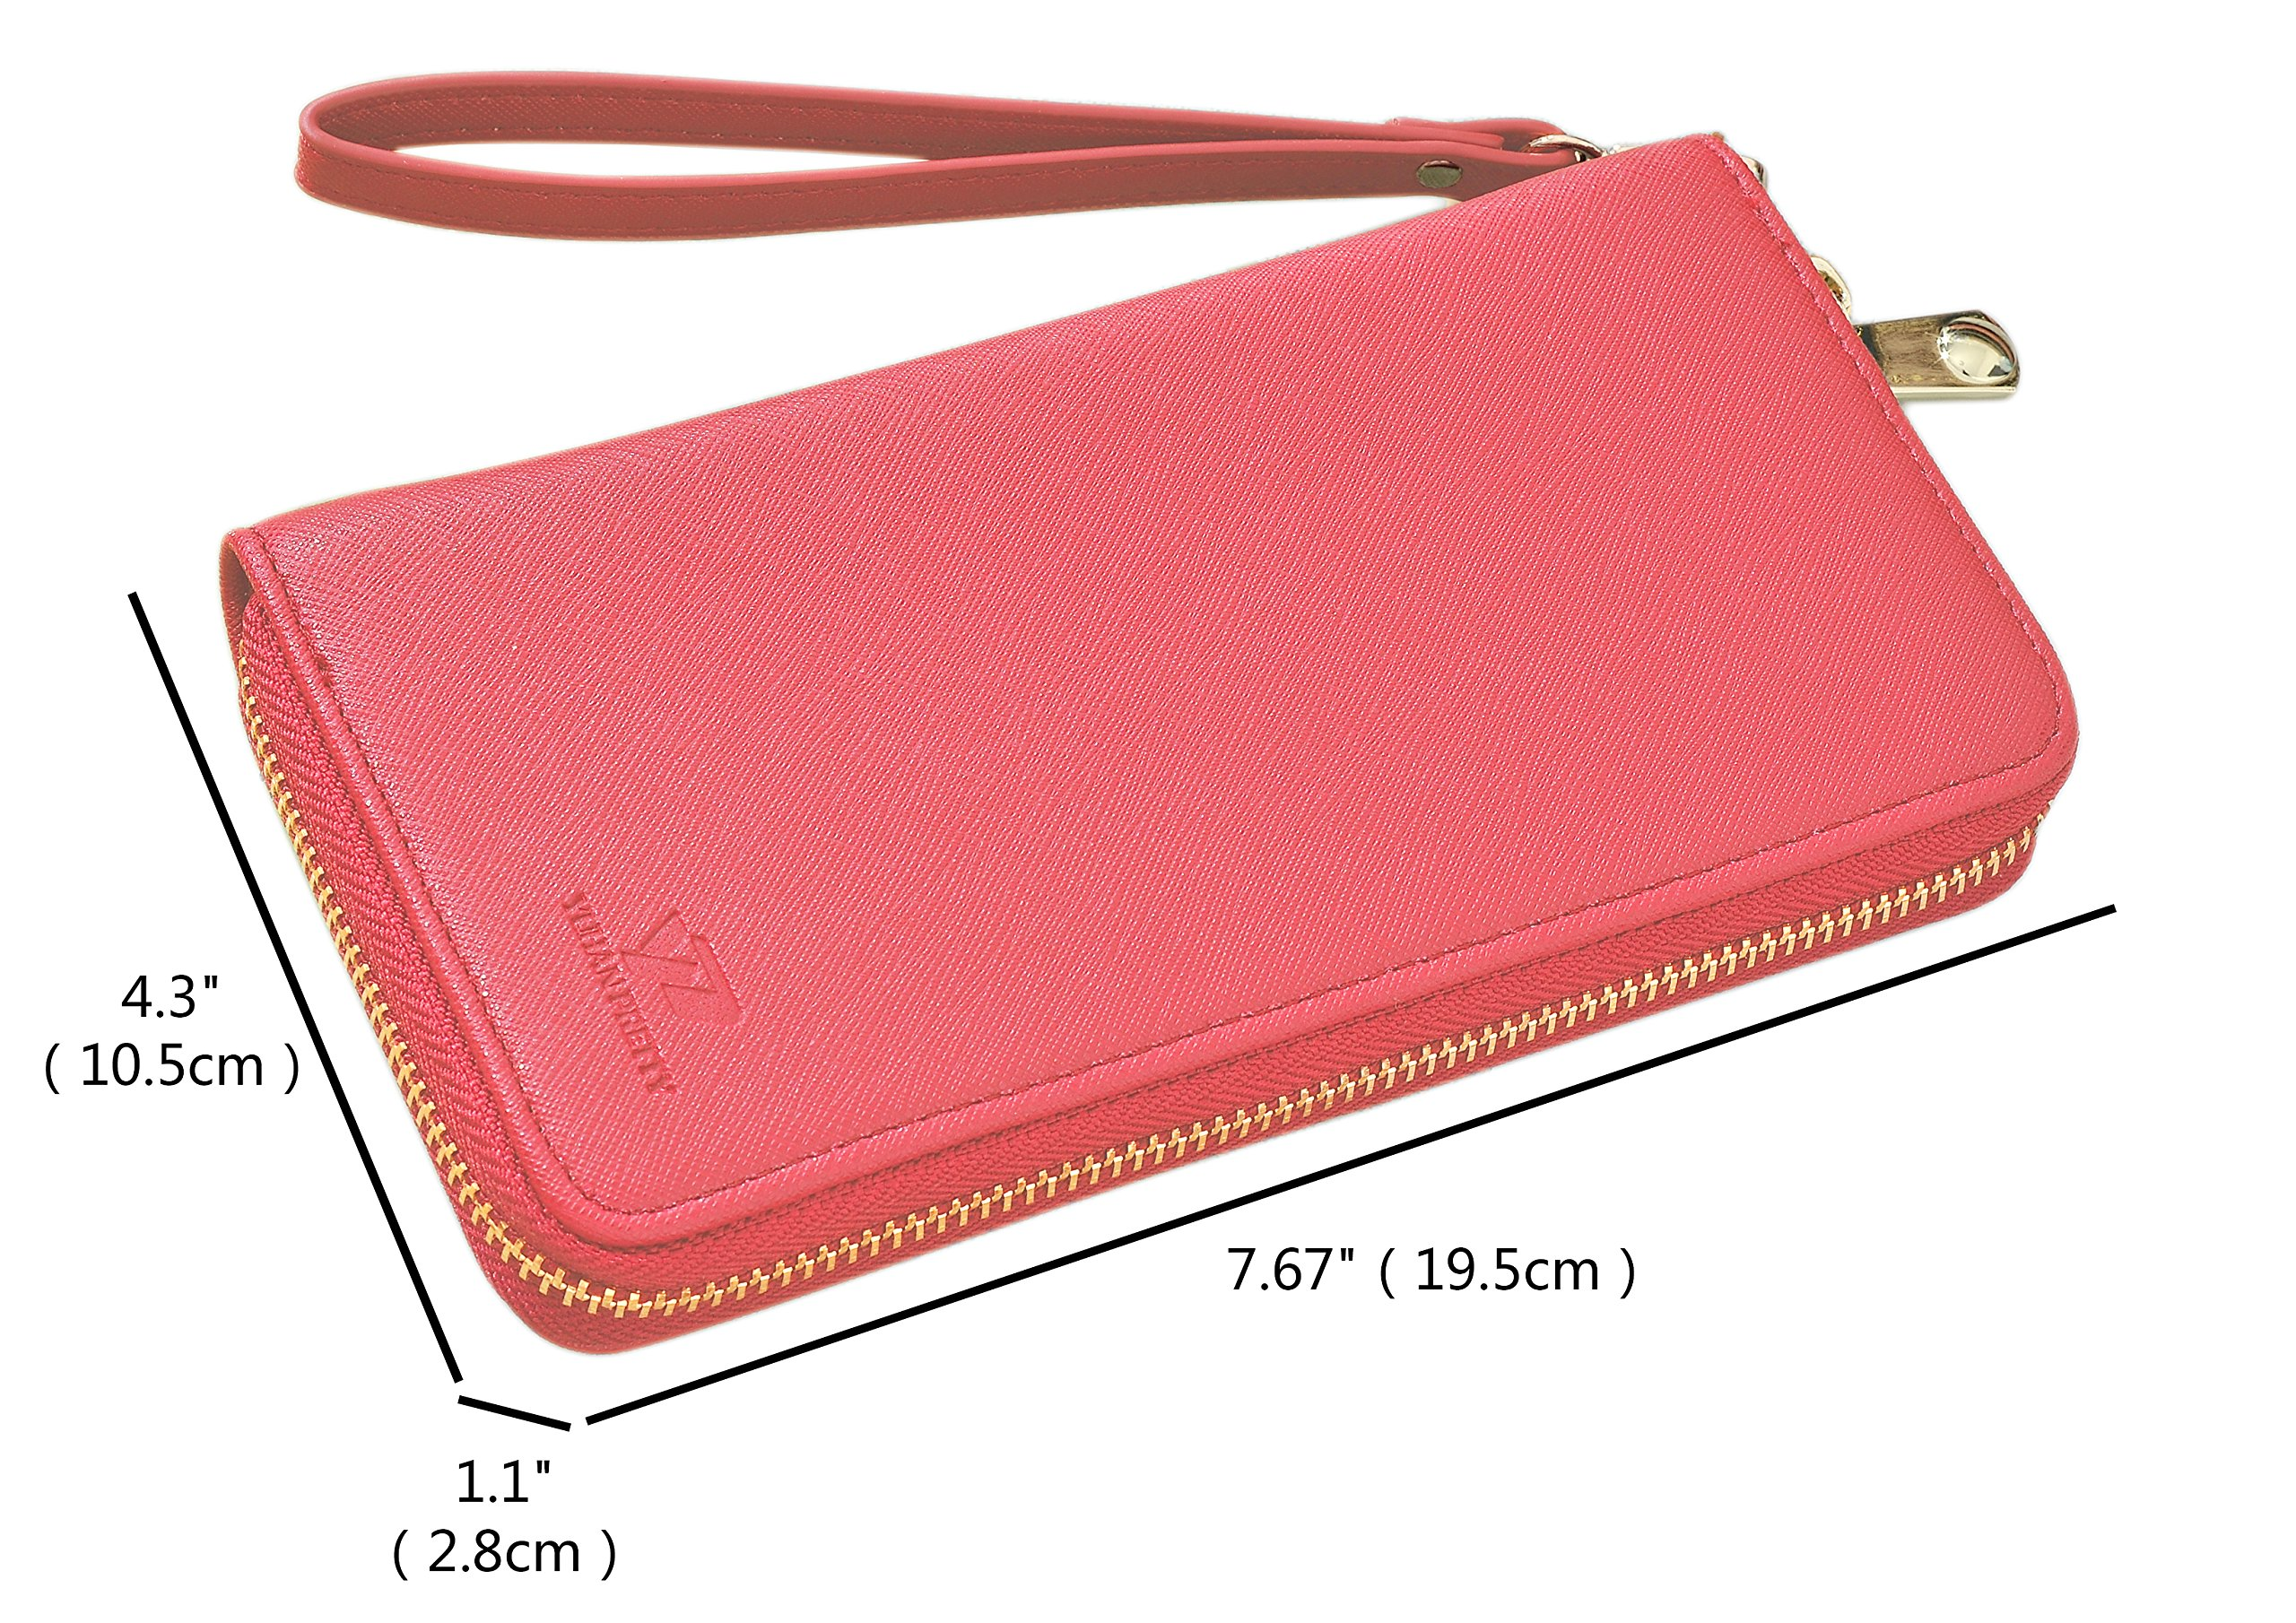 Womens Leather Wallet Clutch Long Zipper Wallets with Wrist Strap Card Holder (Red - New) by Yuhan Pretty (Image #5)